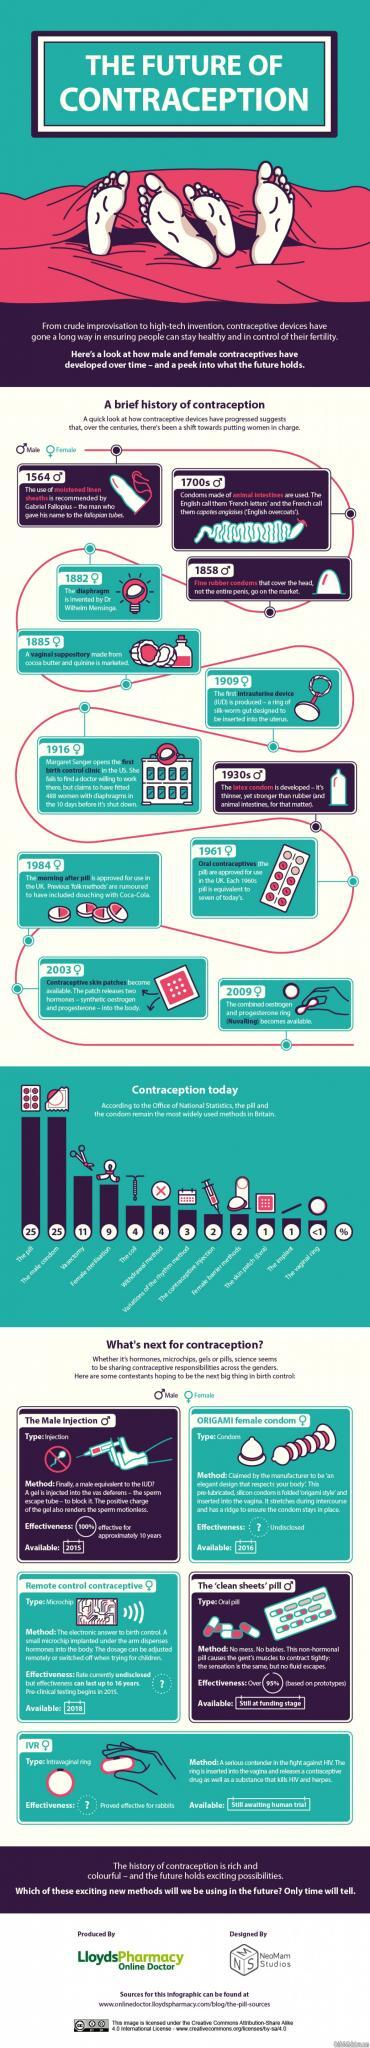 A Strange History of Contraception (Infographic)